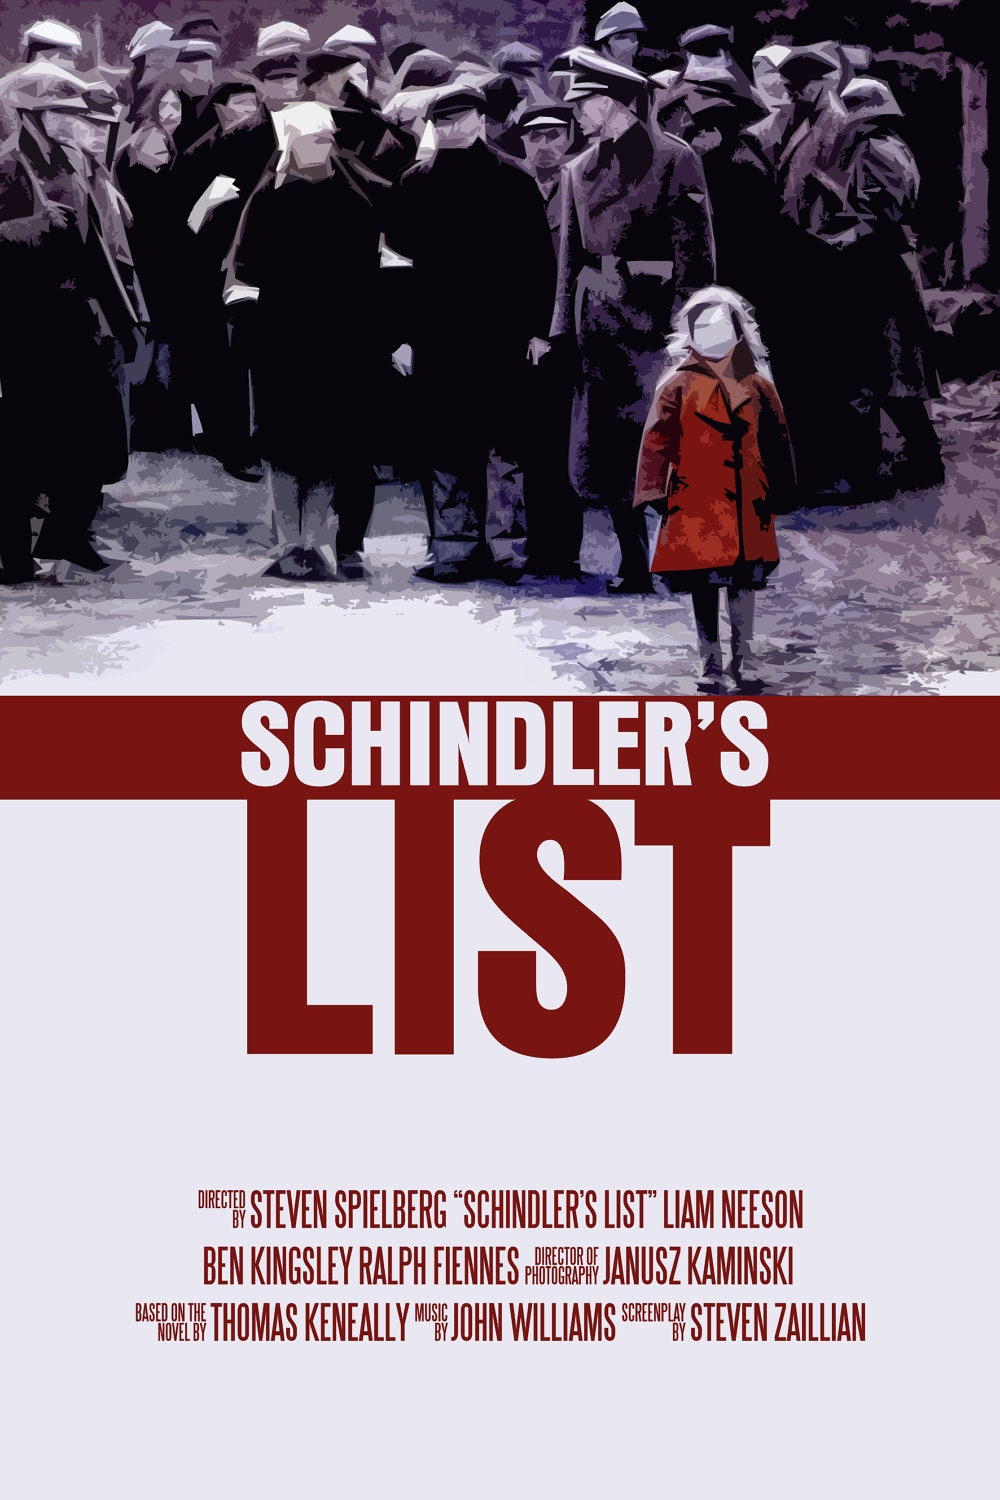 a paper on the movie schindlers list The movie timeline - here's looking at movies, kid schindler's list mistakes schindler's list trivia schindler's list quotes schindler's list trailer.